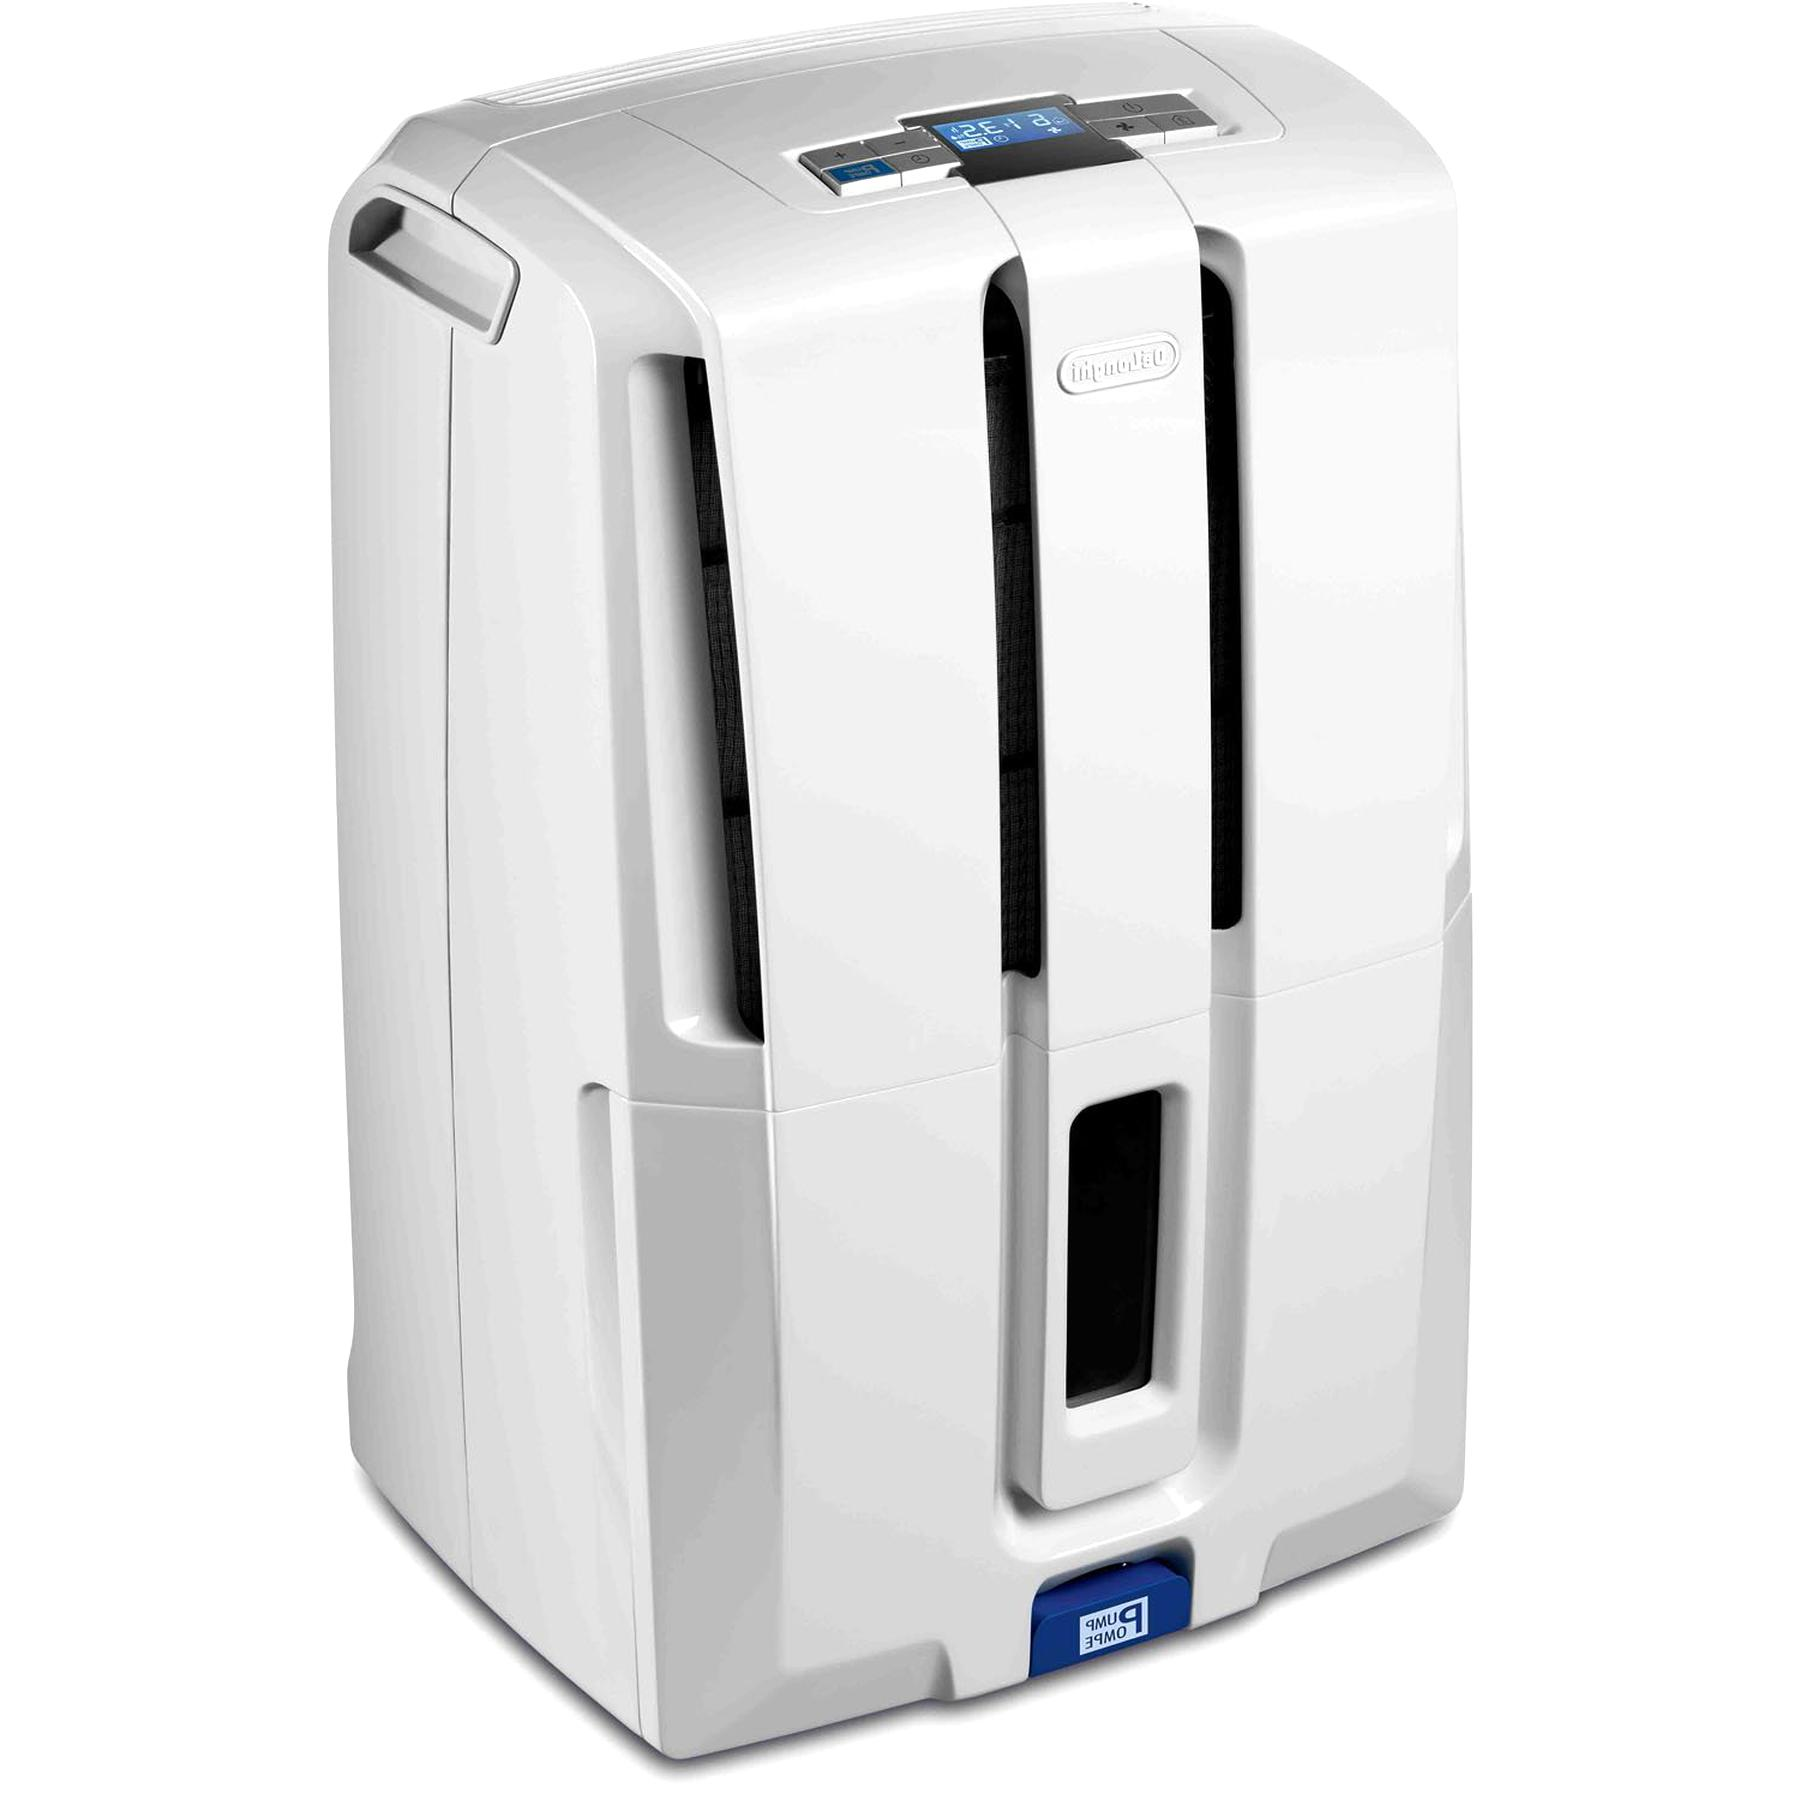 delonghi dehumidifier for sale